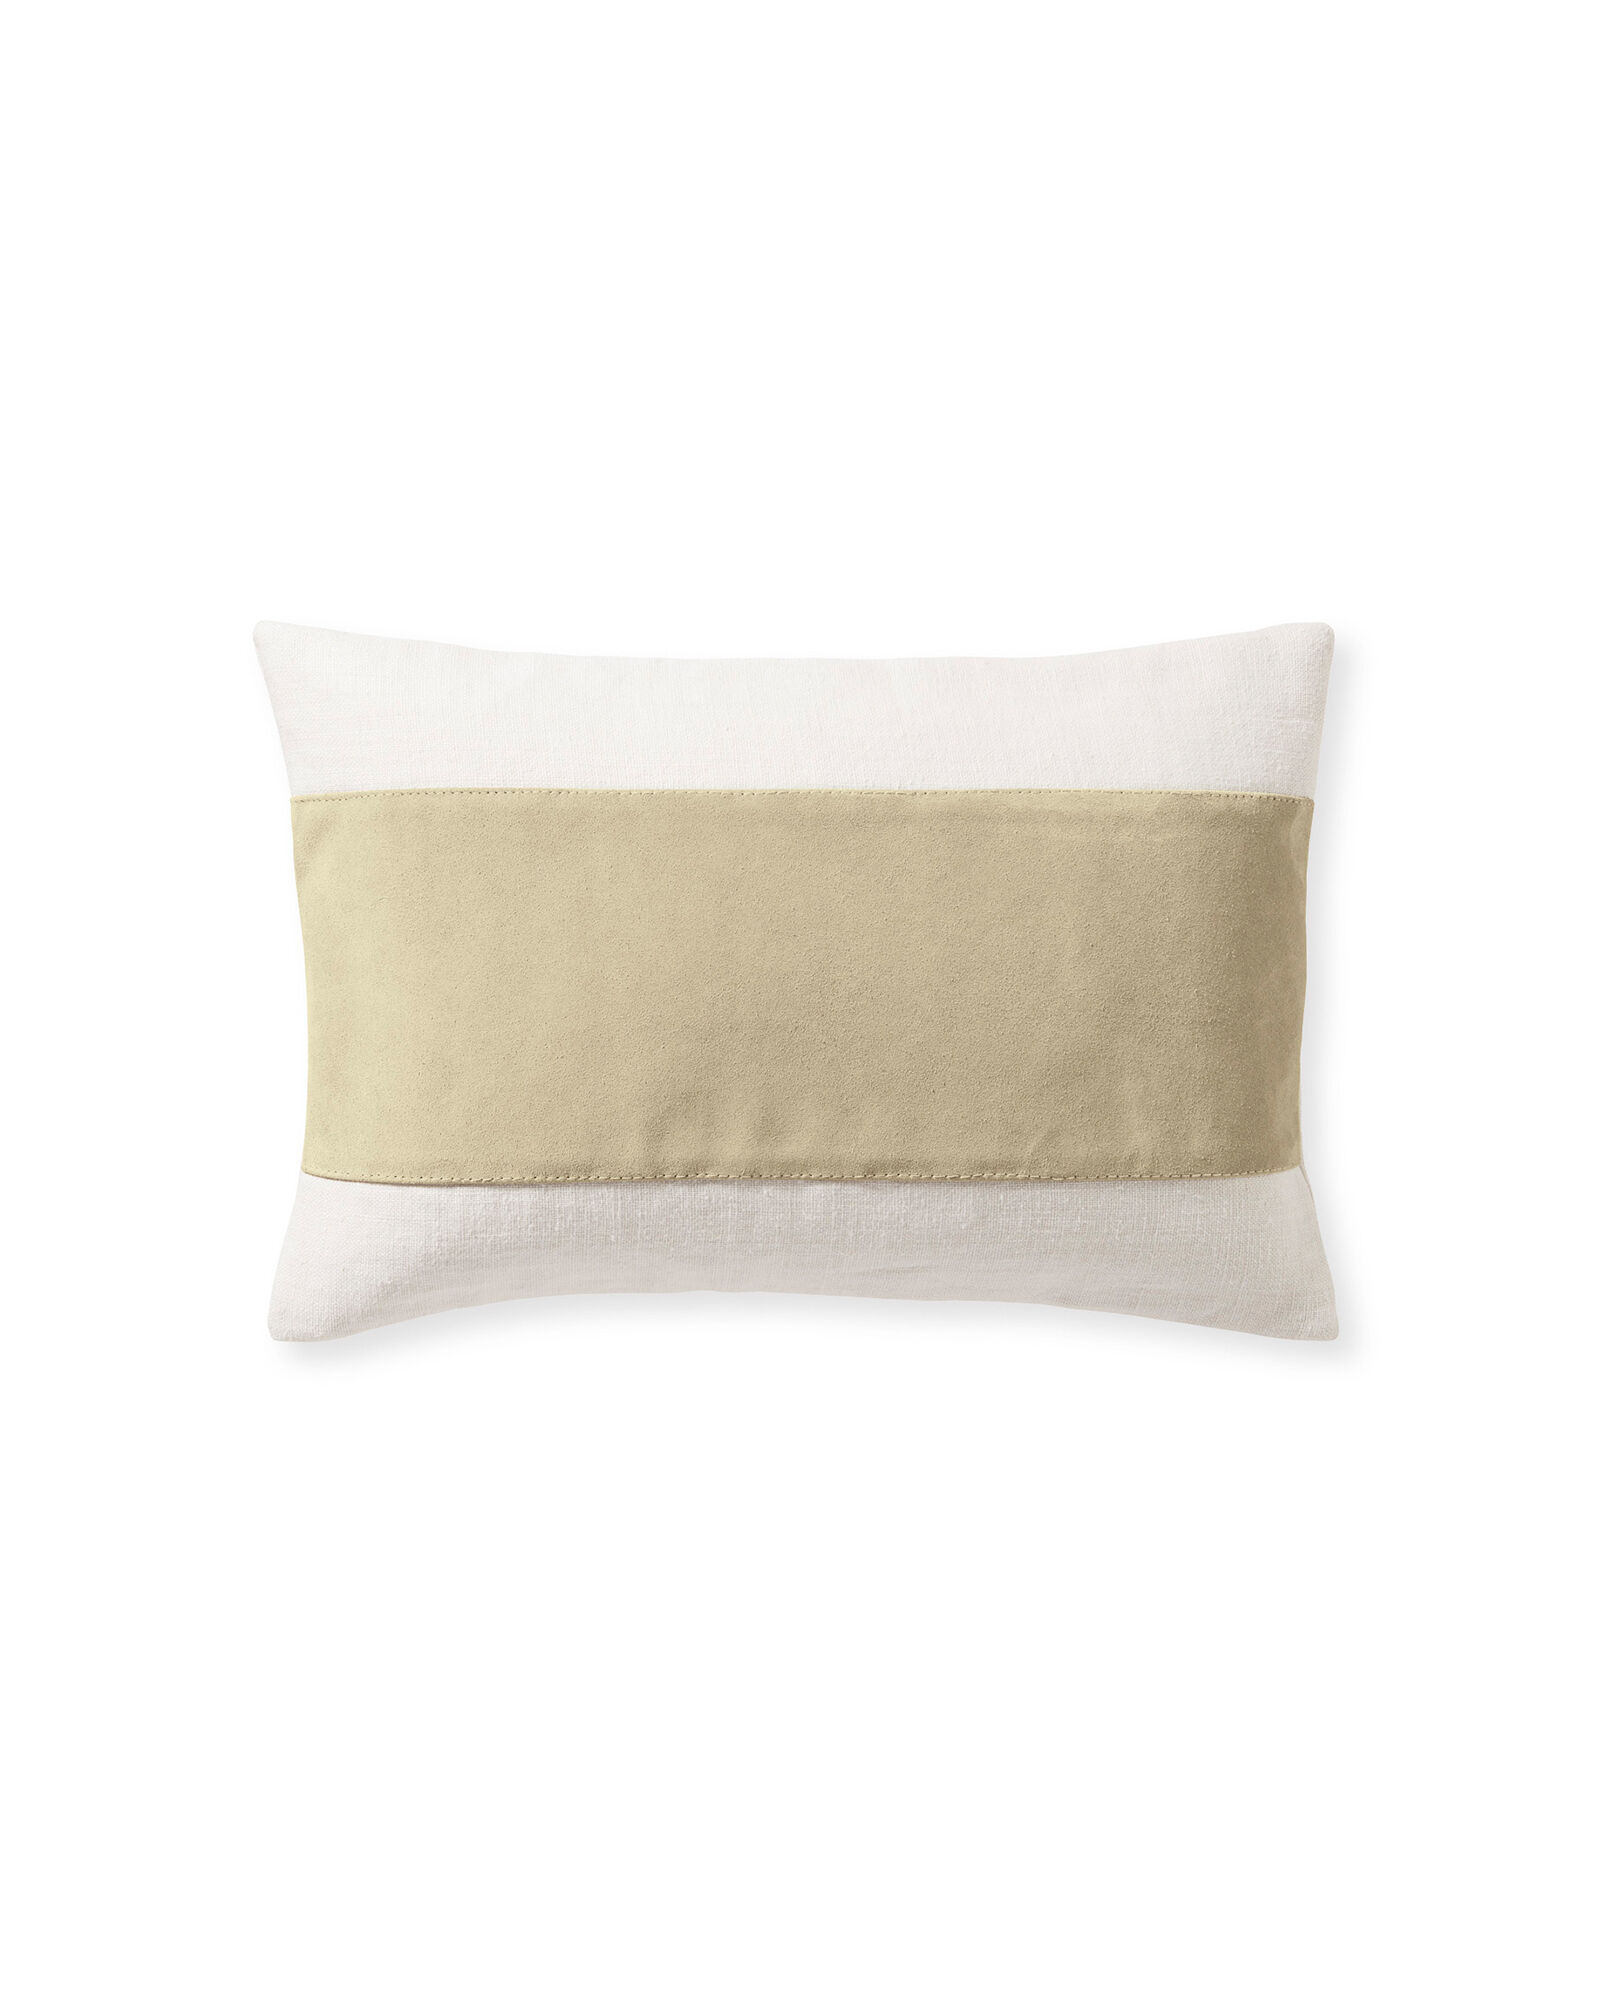 North Lake Pillow Cover, Sand